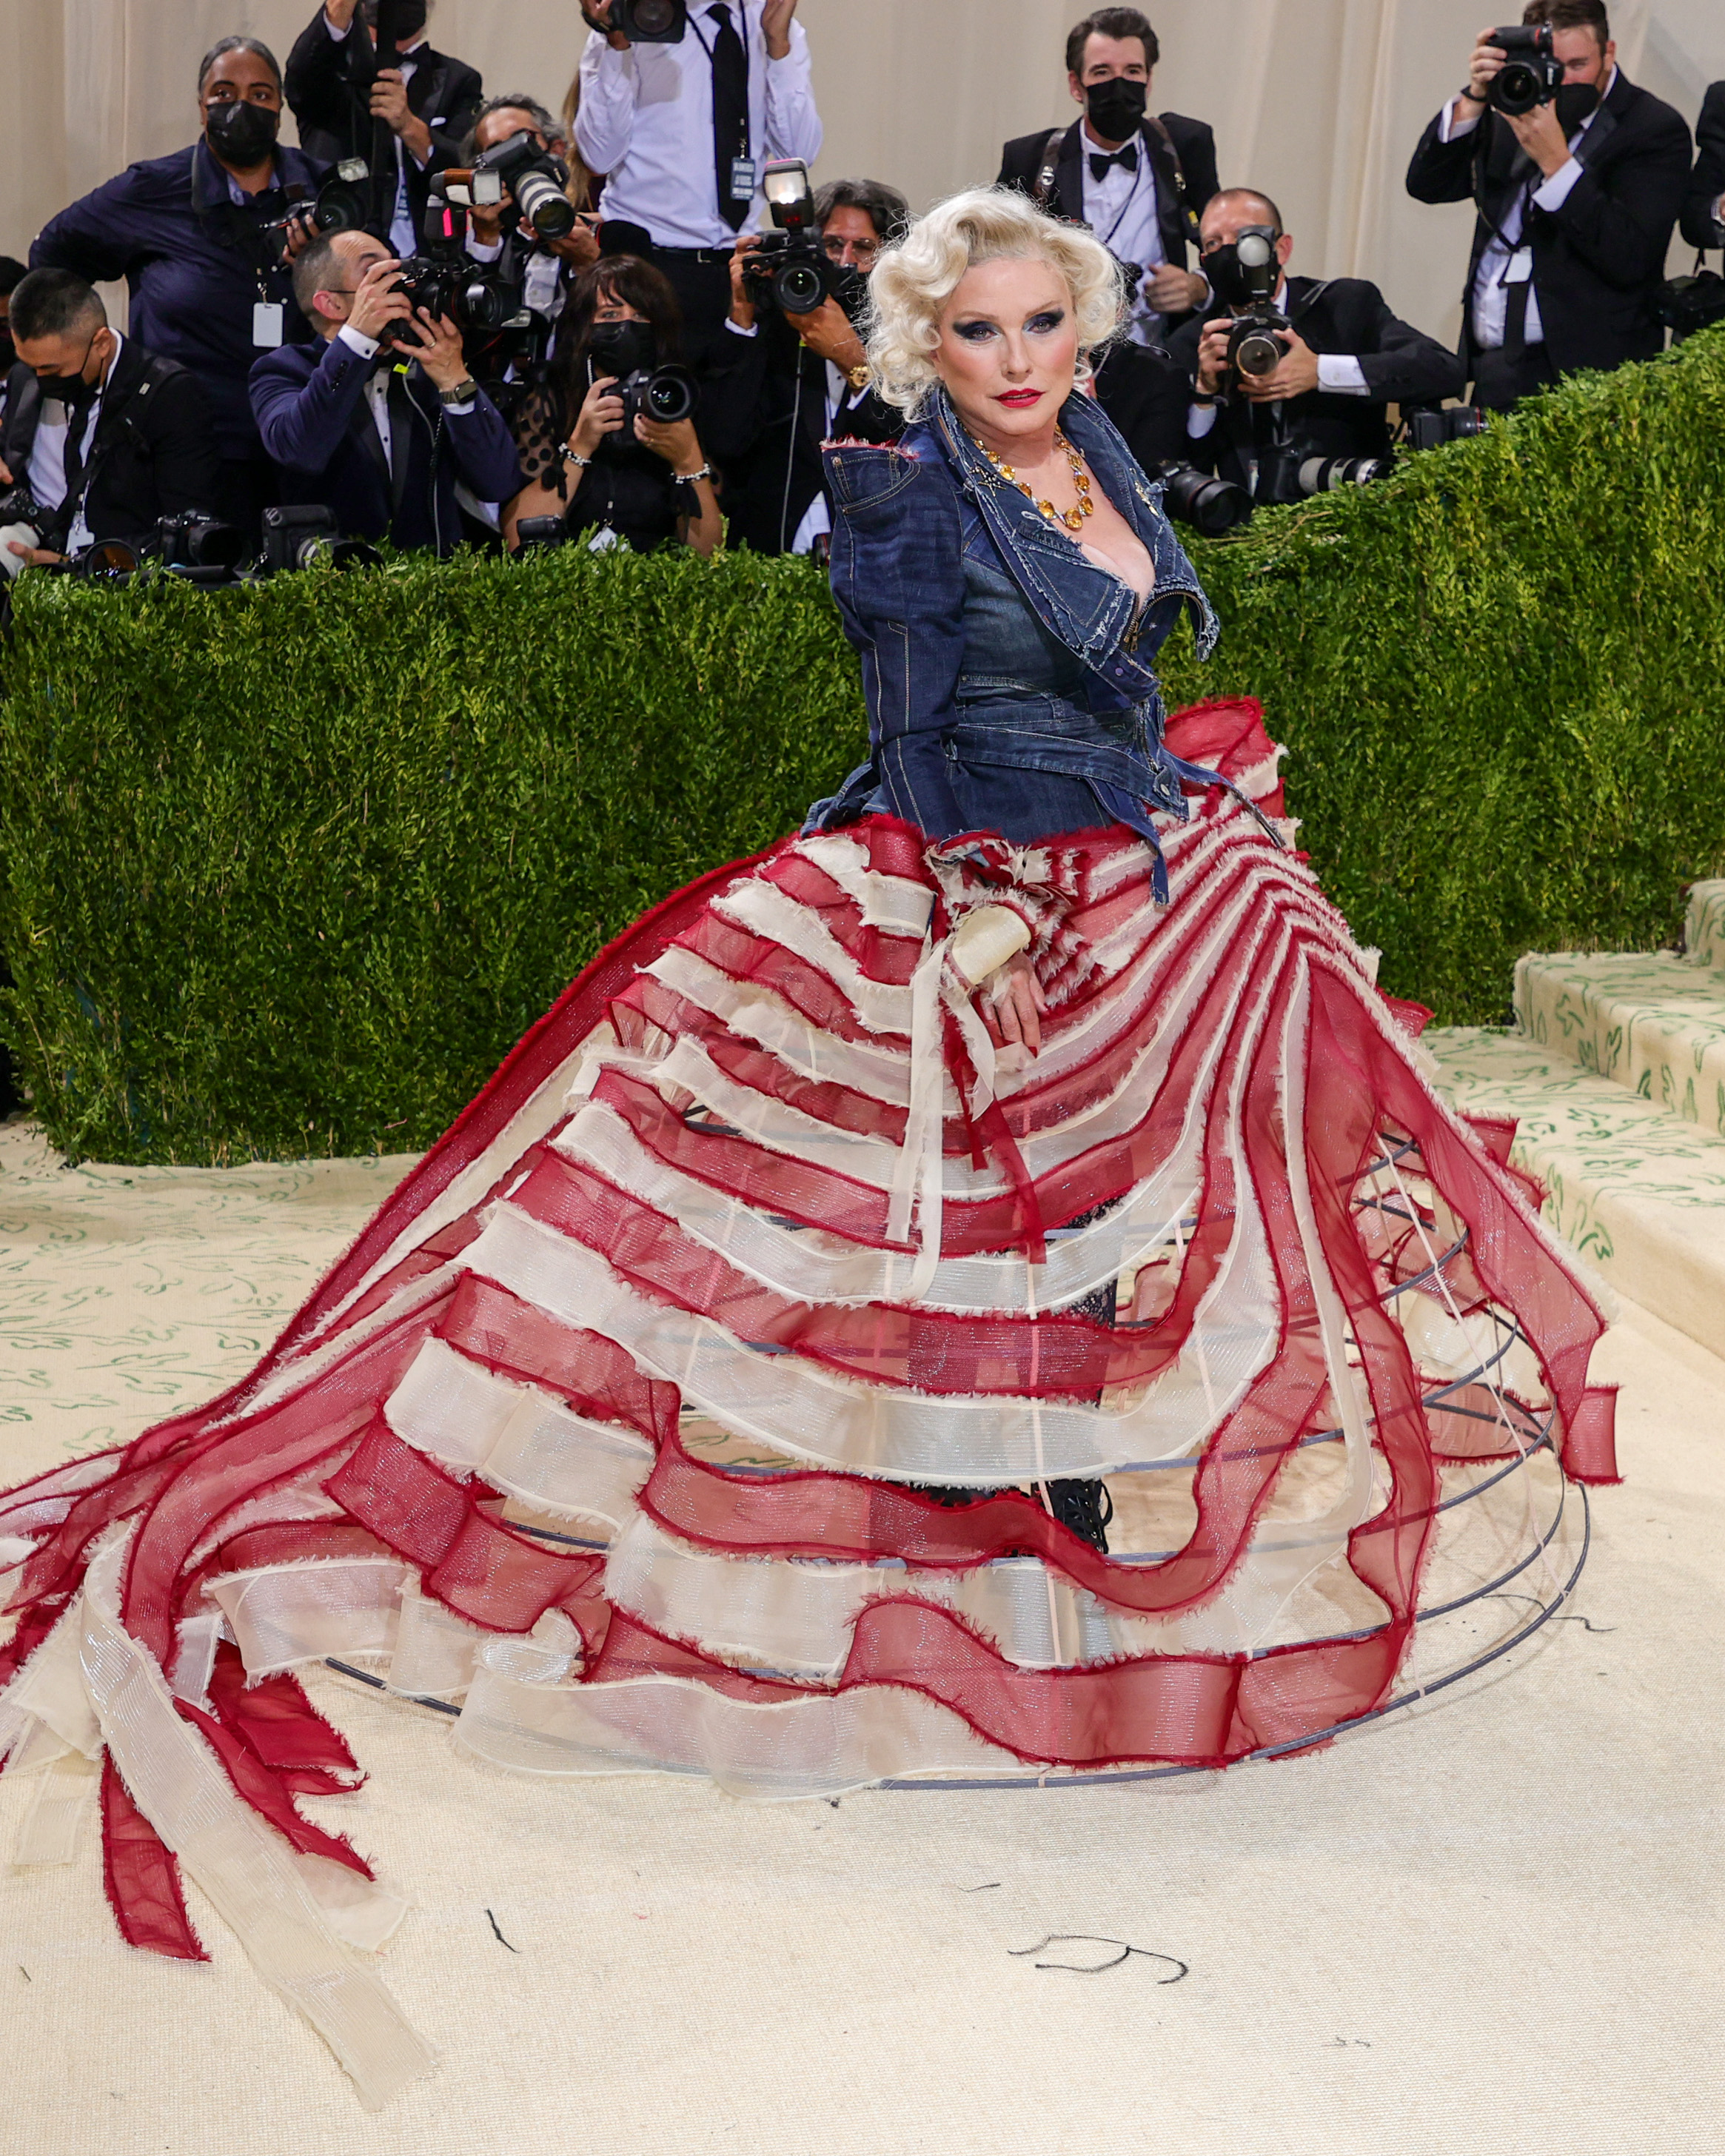 Debbie Harry wears a ball gown made from recycled denim.